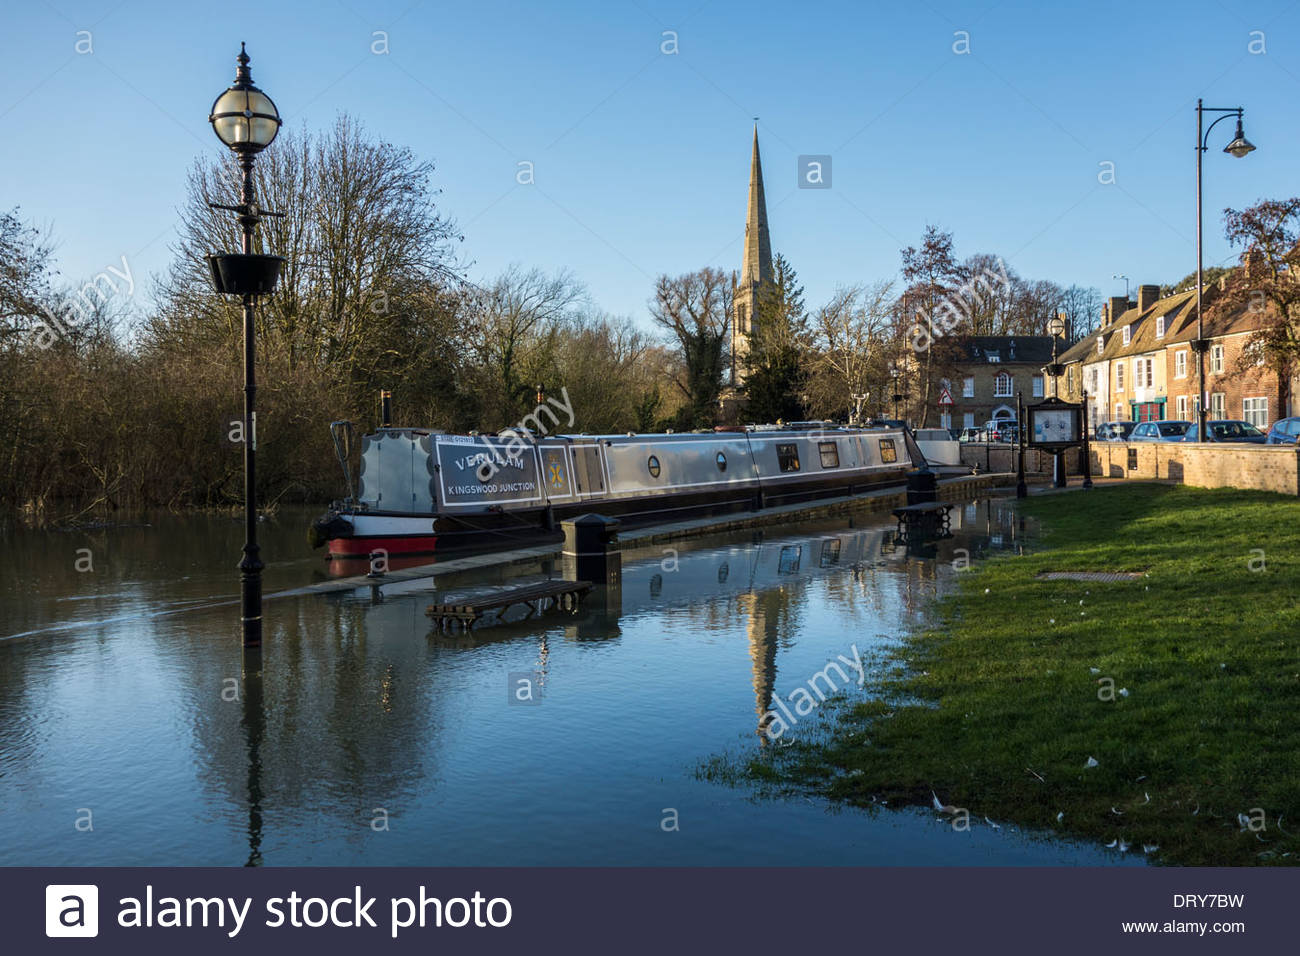 A narrowboat moored at St Ives, Cambridgeshire, surrounded by floodwater - Stock Image